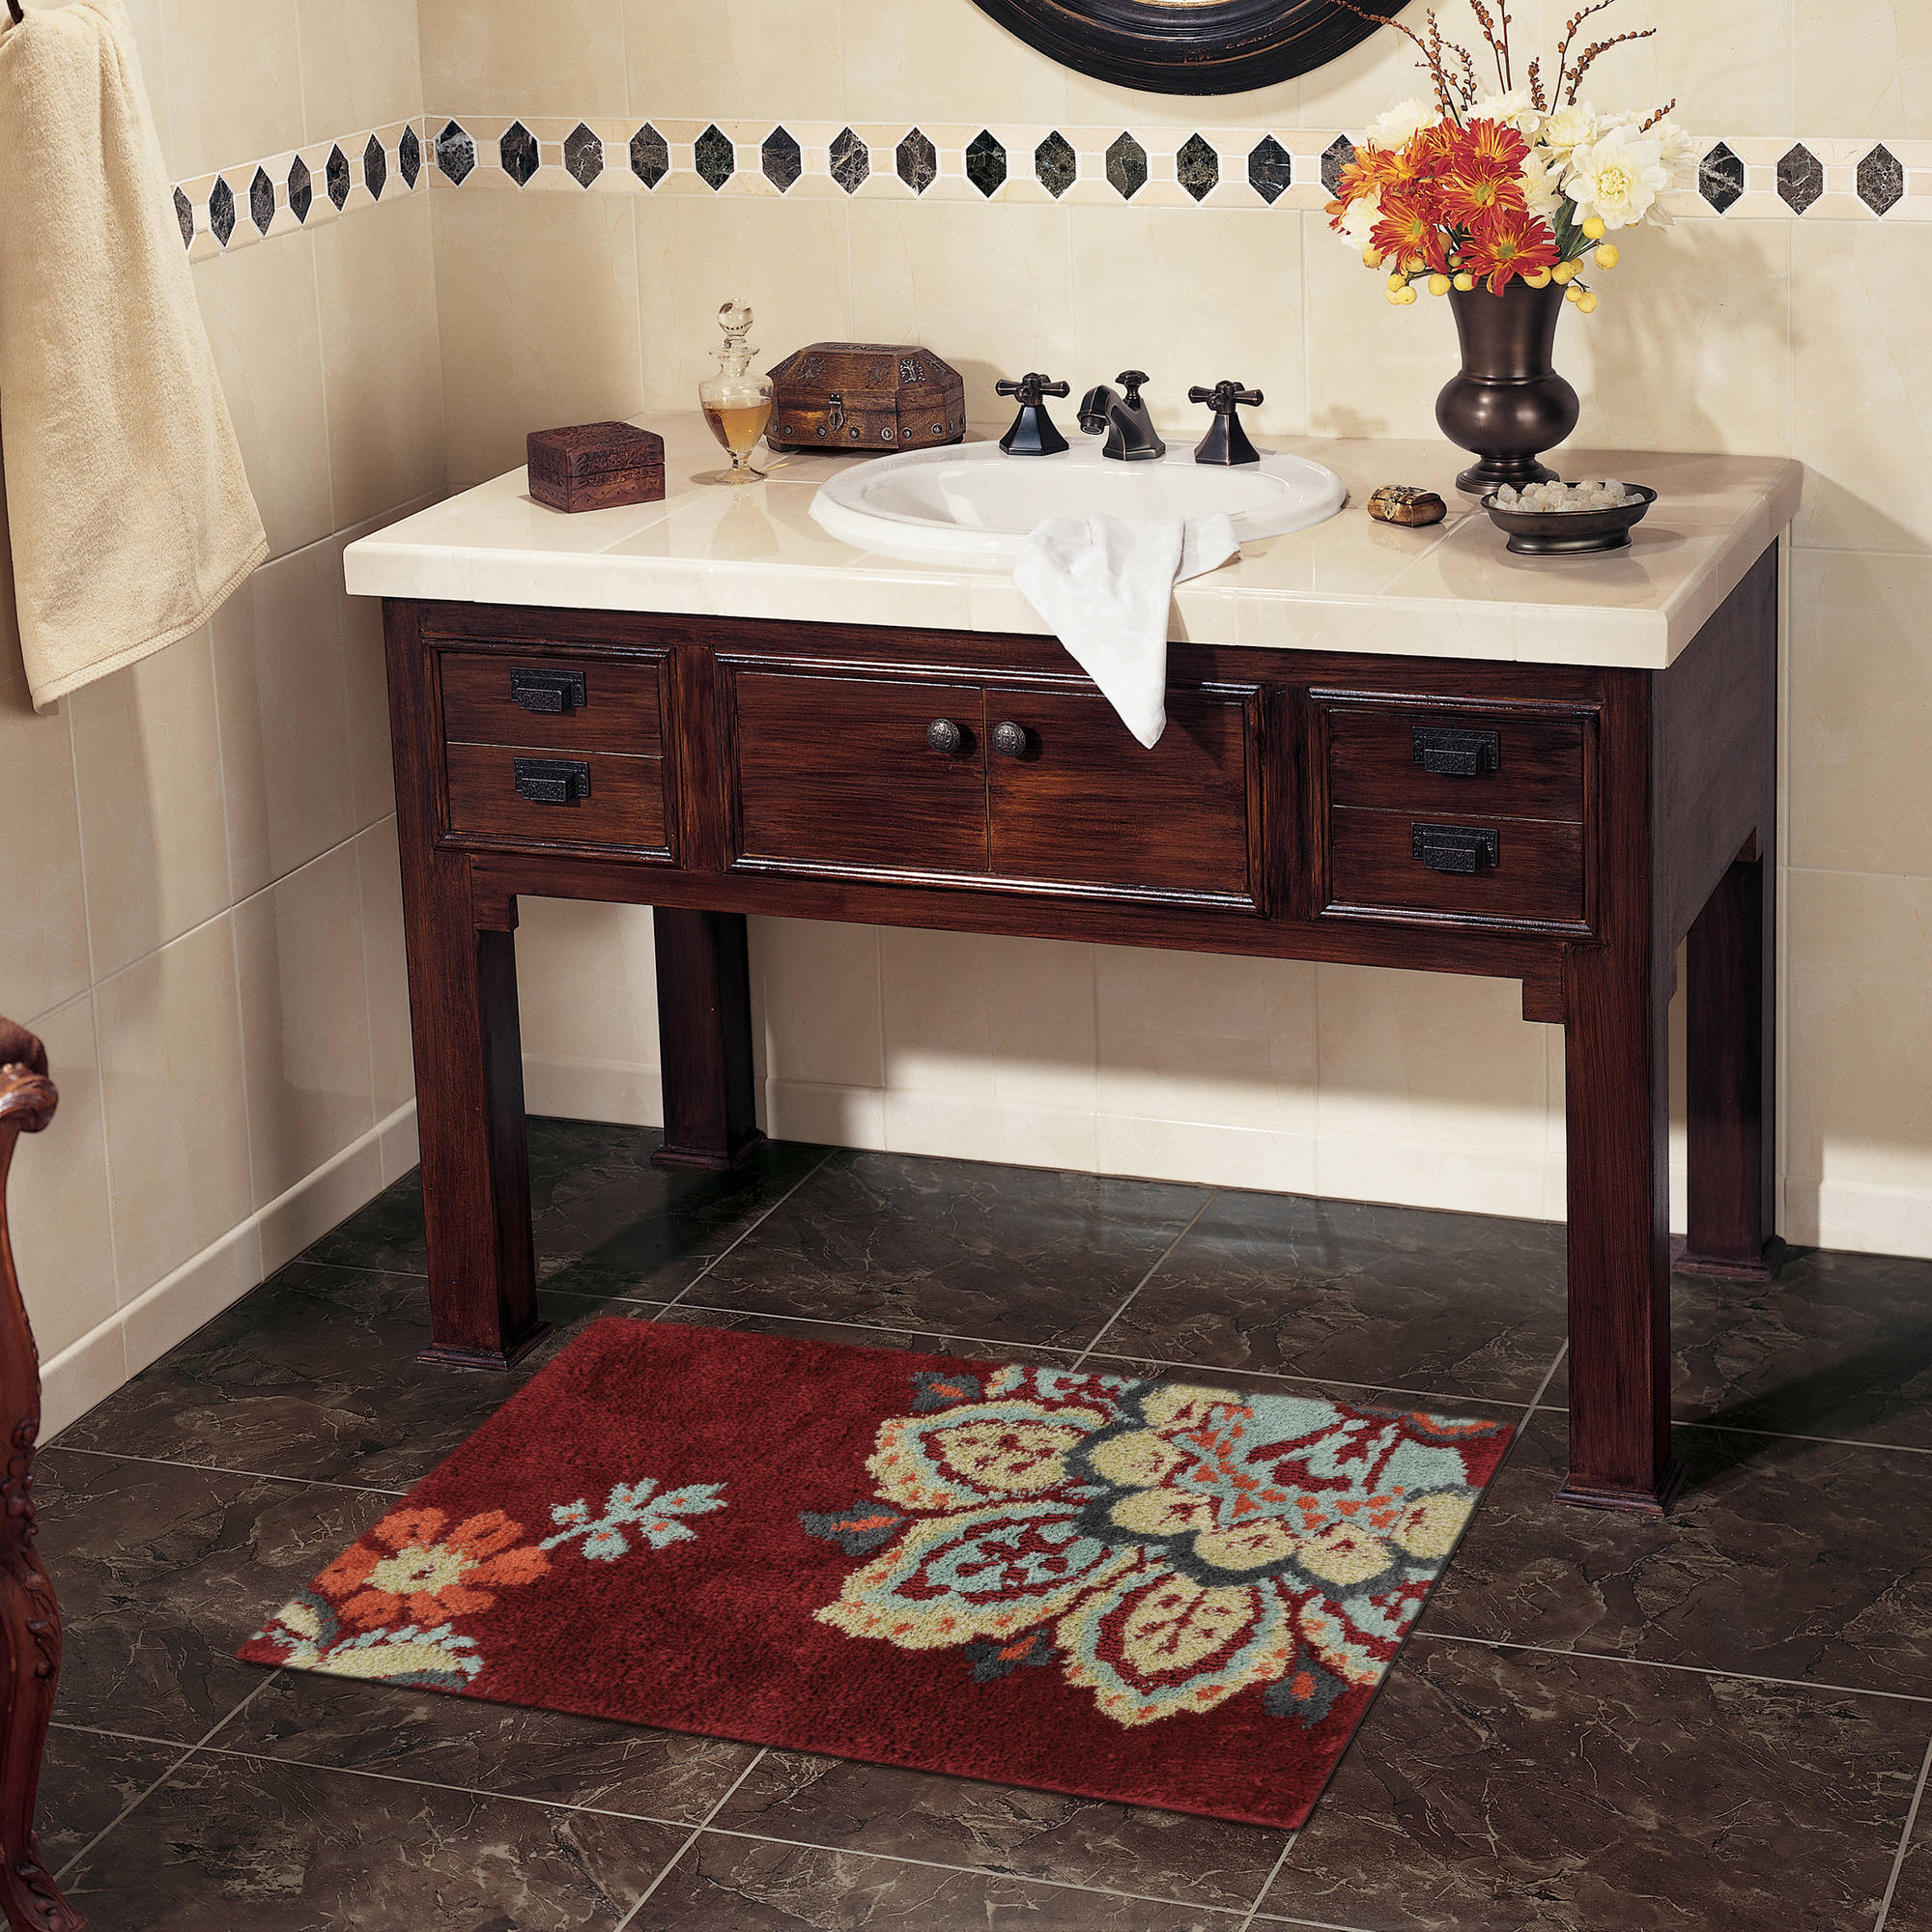 Click here to buy Better Homes and Gardens Jacobean Bath Rug, Red by Mohawk Home.